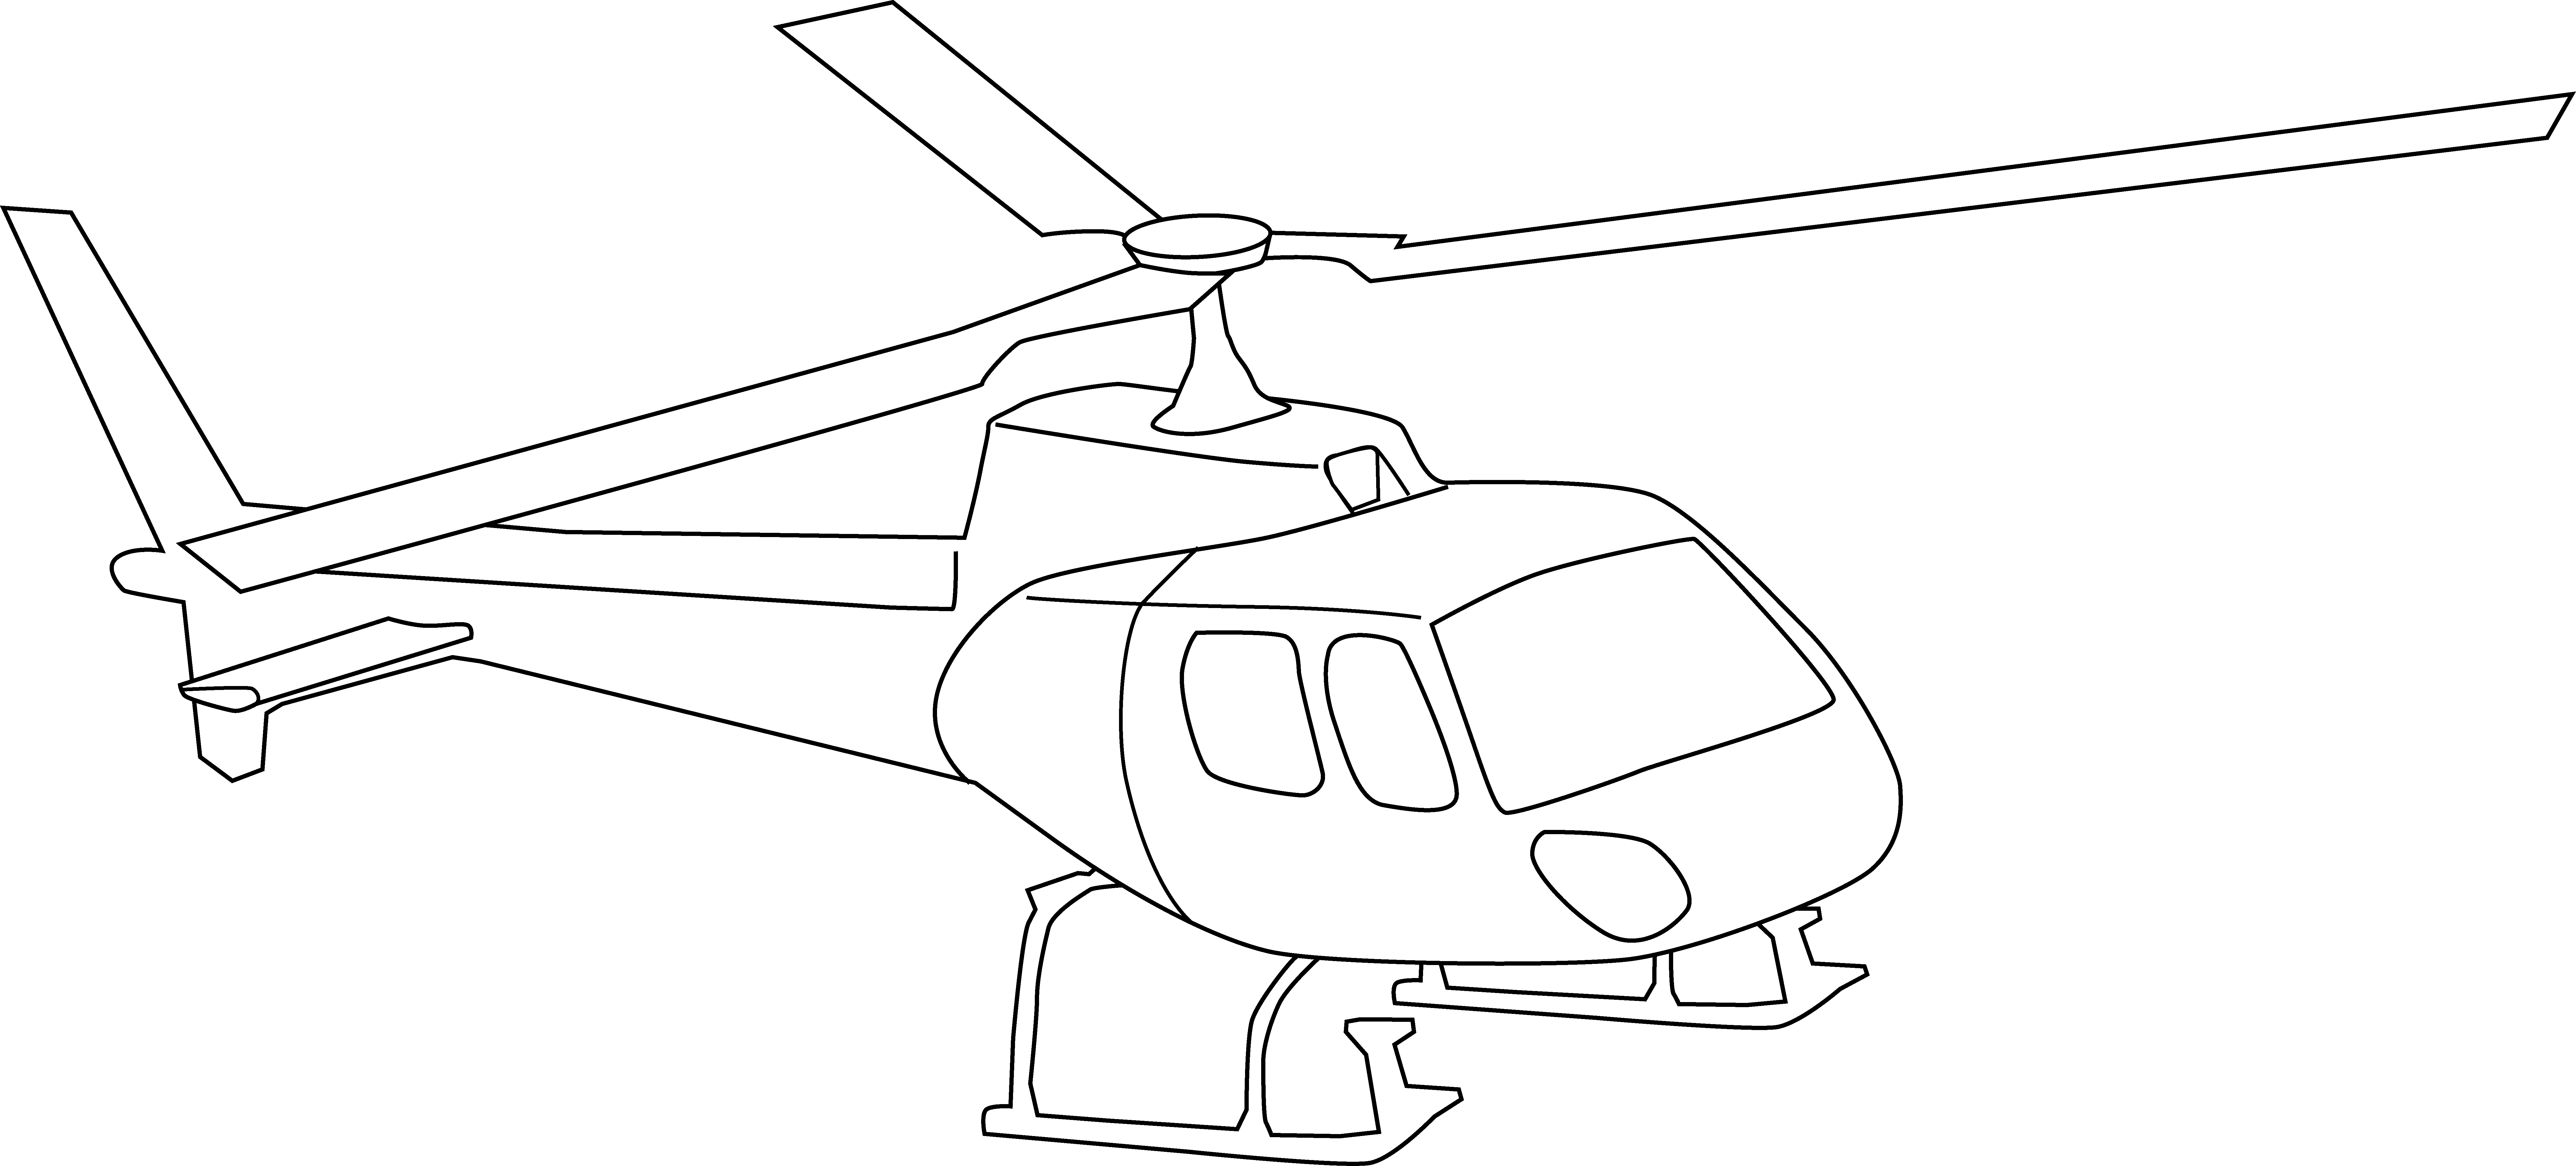 Drawing helicopters air ambulance. Clipart helicopter huge